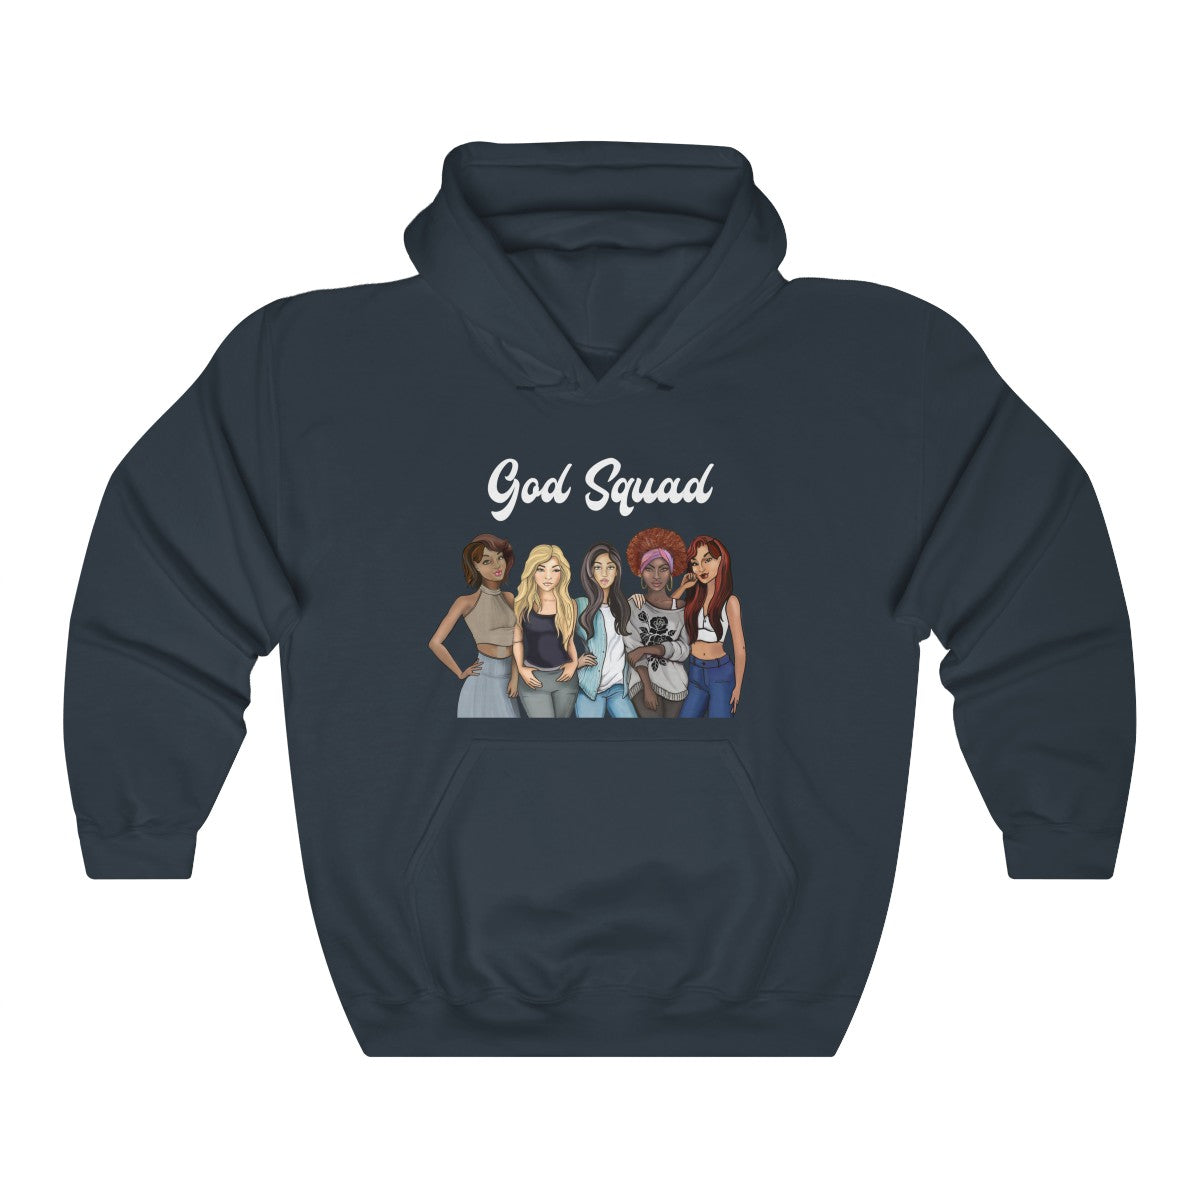 God Squad Diversity Unisex Heavy Blend™ Hooded Sweatshirt, S to 5XL - skyrockettees